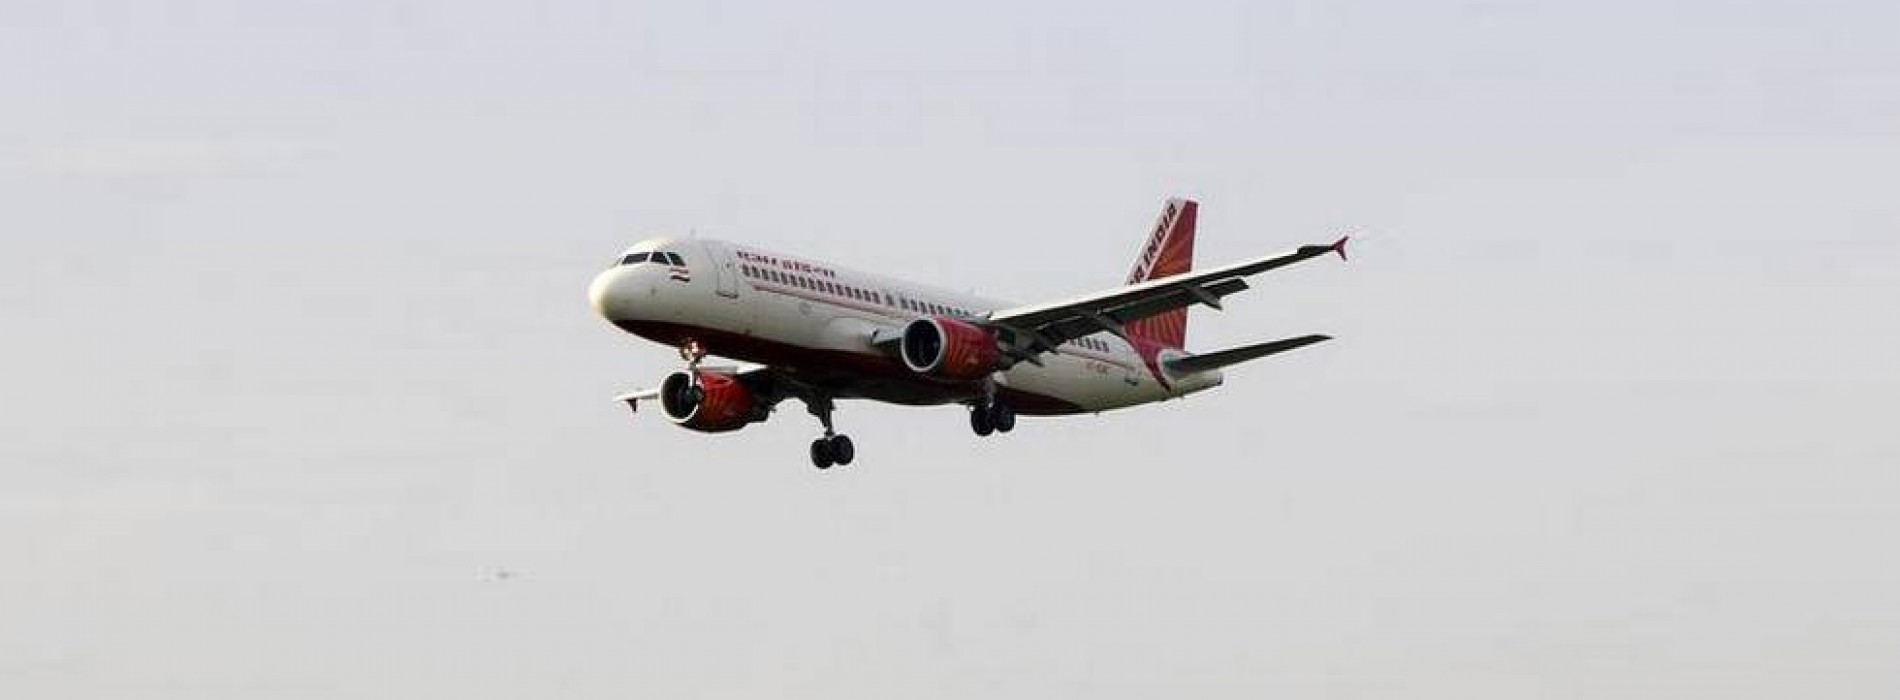 Air India's operational profit rises to Rs 215 crore in 2016-17